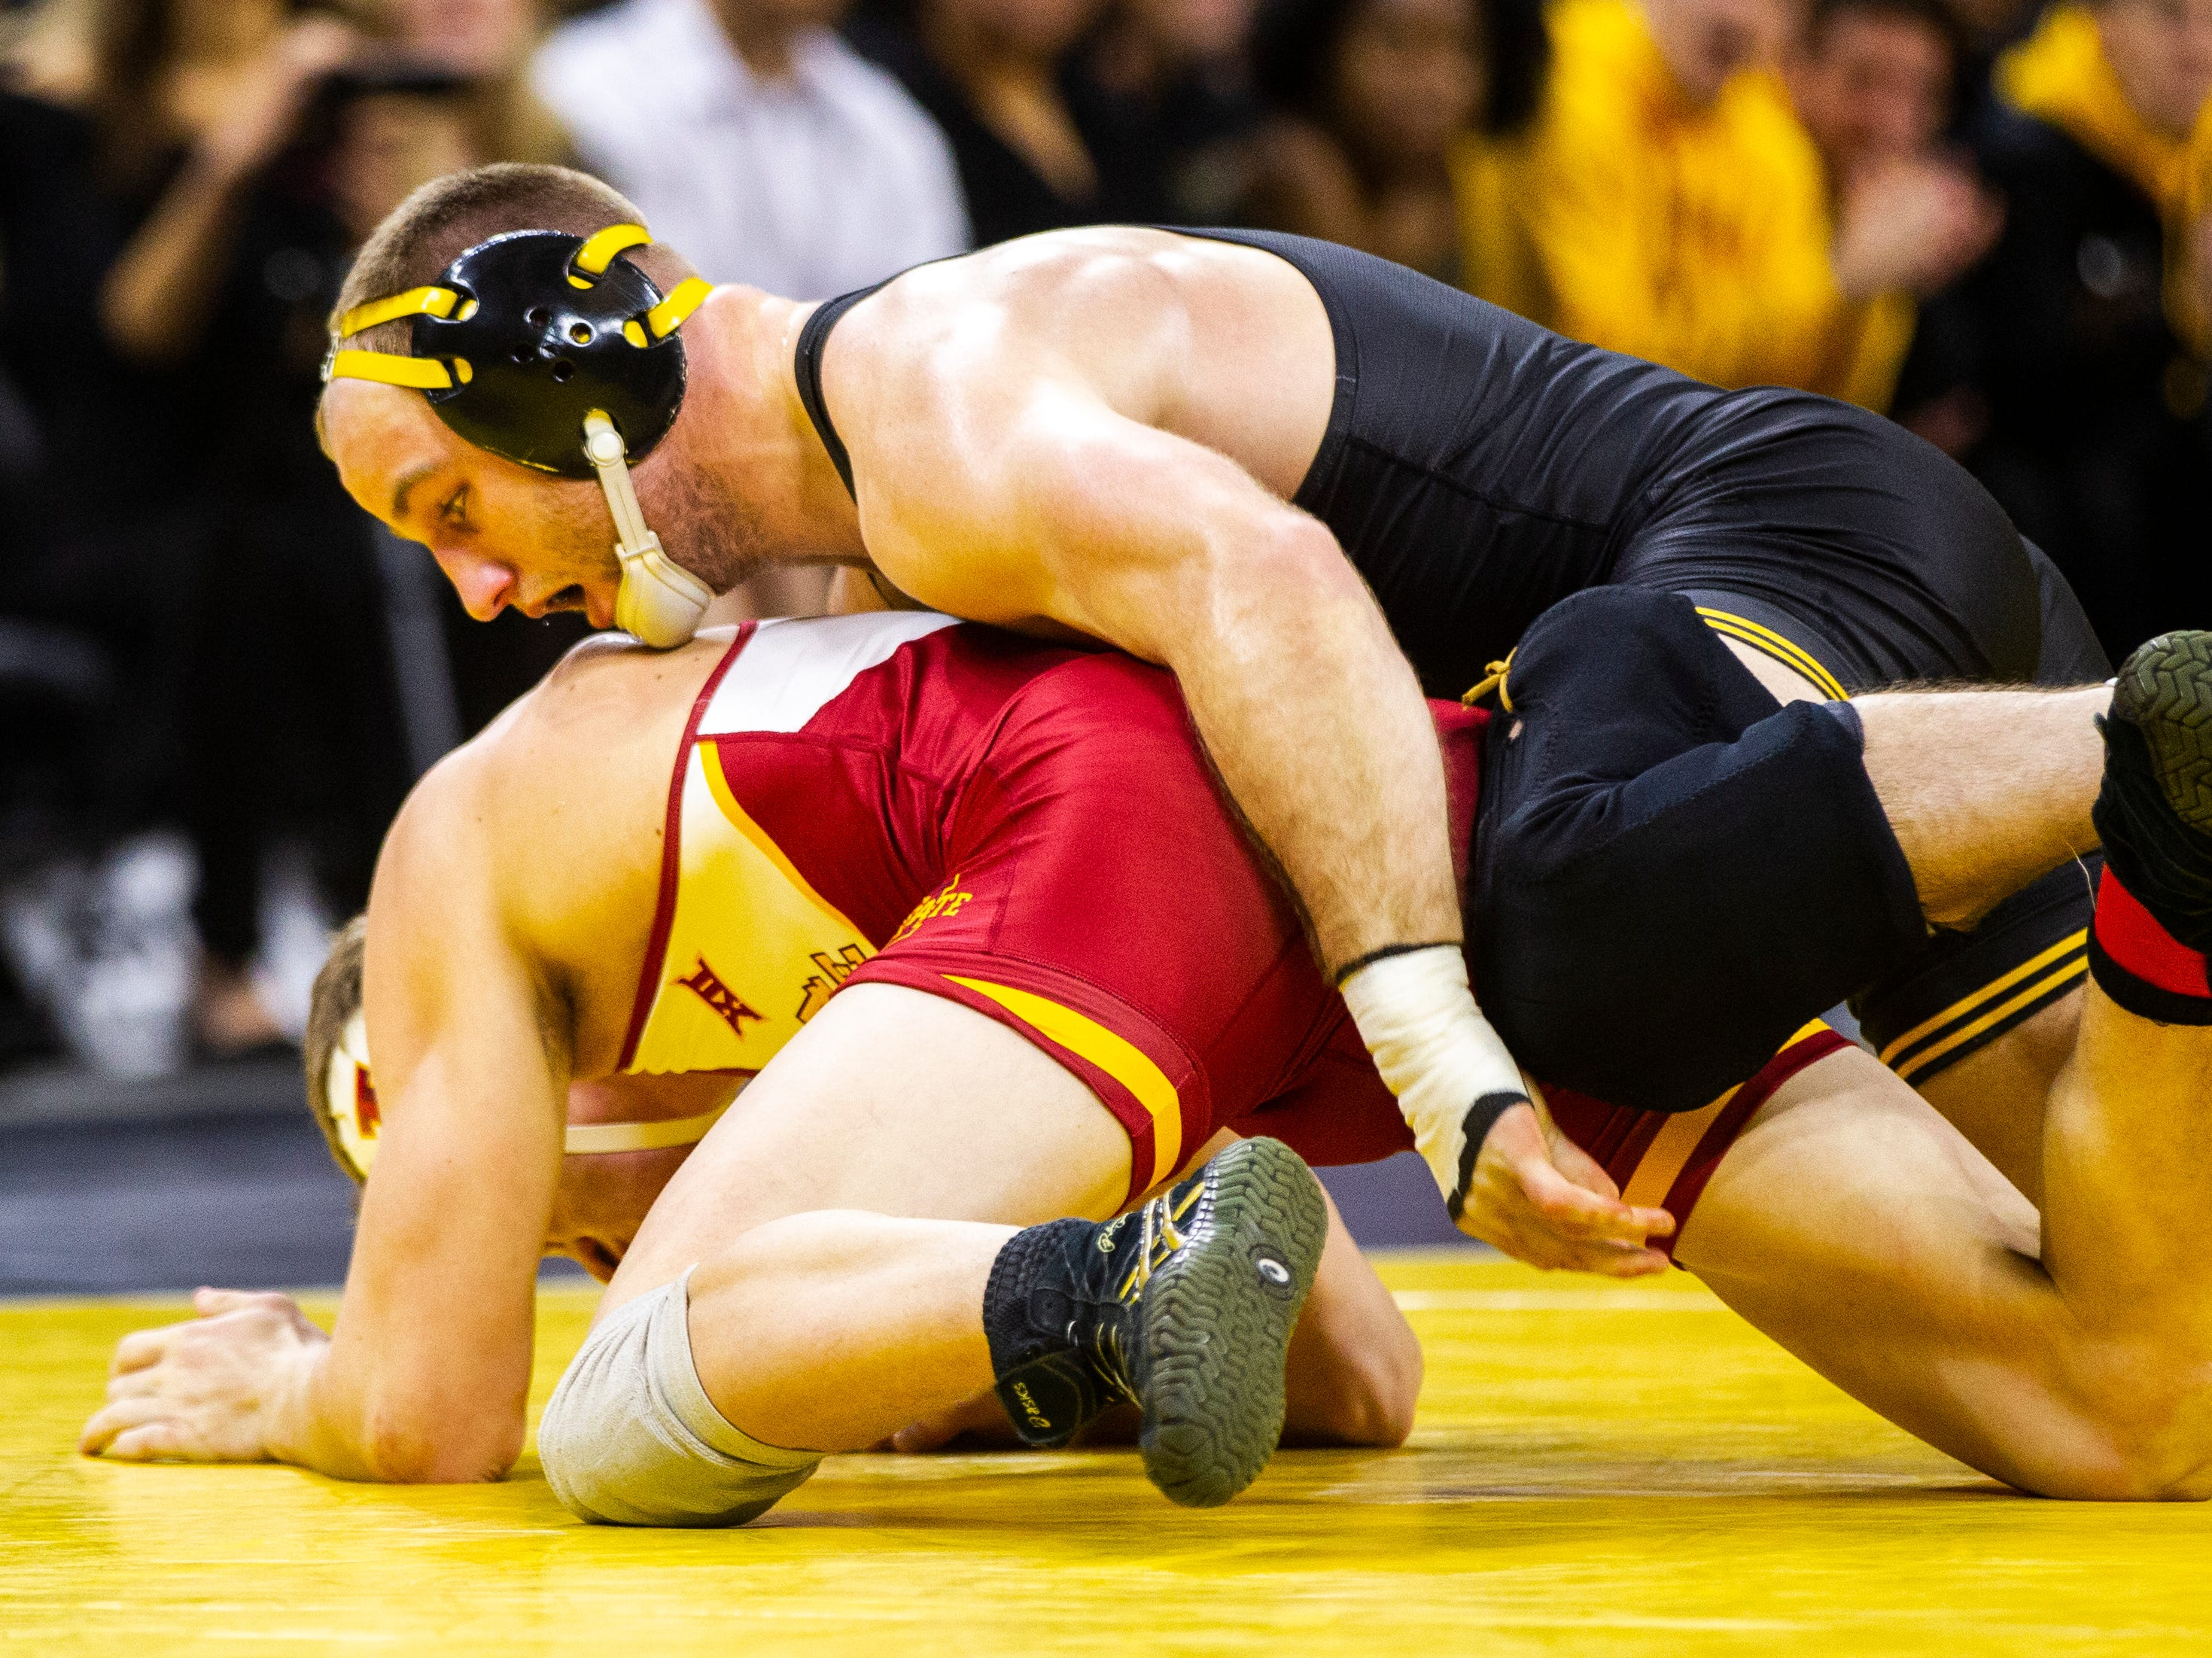 Iowa's Alex Marinelli, right, wrestles Iowa State's Brady Jennings at 165 during a NCAA Cy-Hawk series wrestling dual on Saturday, Dec. 1, 2018, at Carver-Hawkeye Arena in Iowa City.